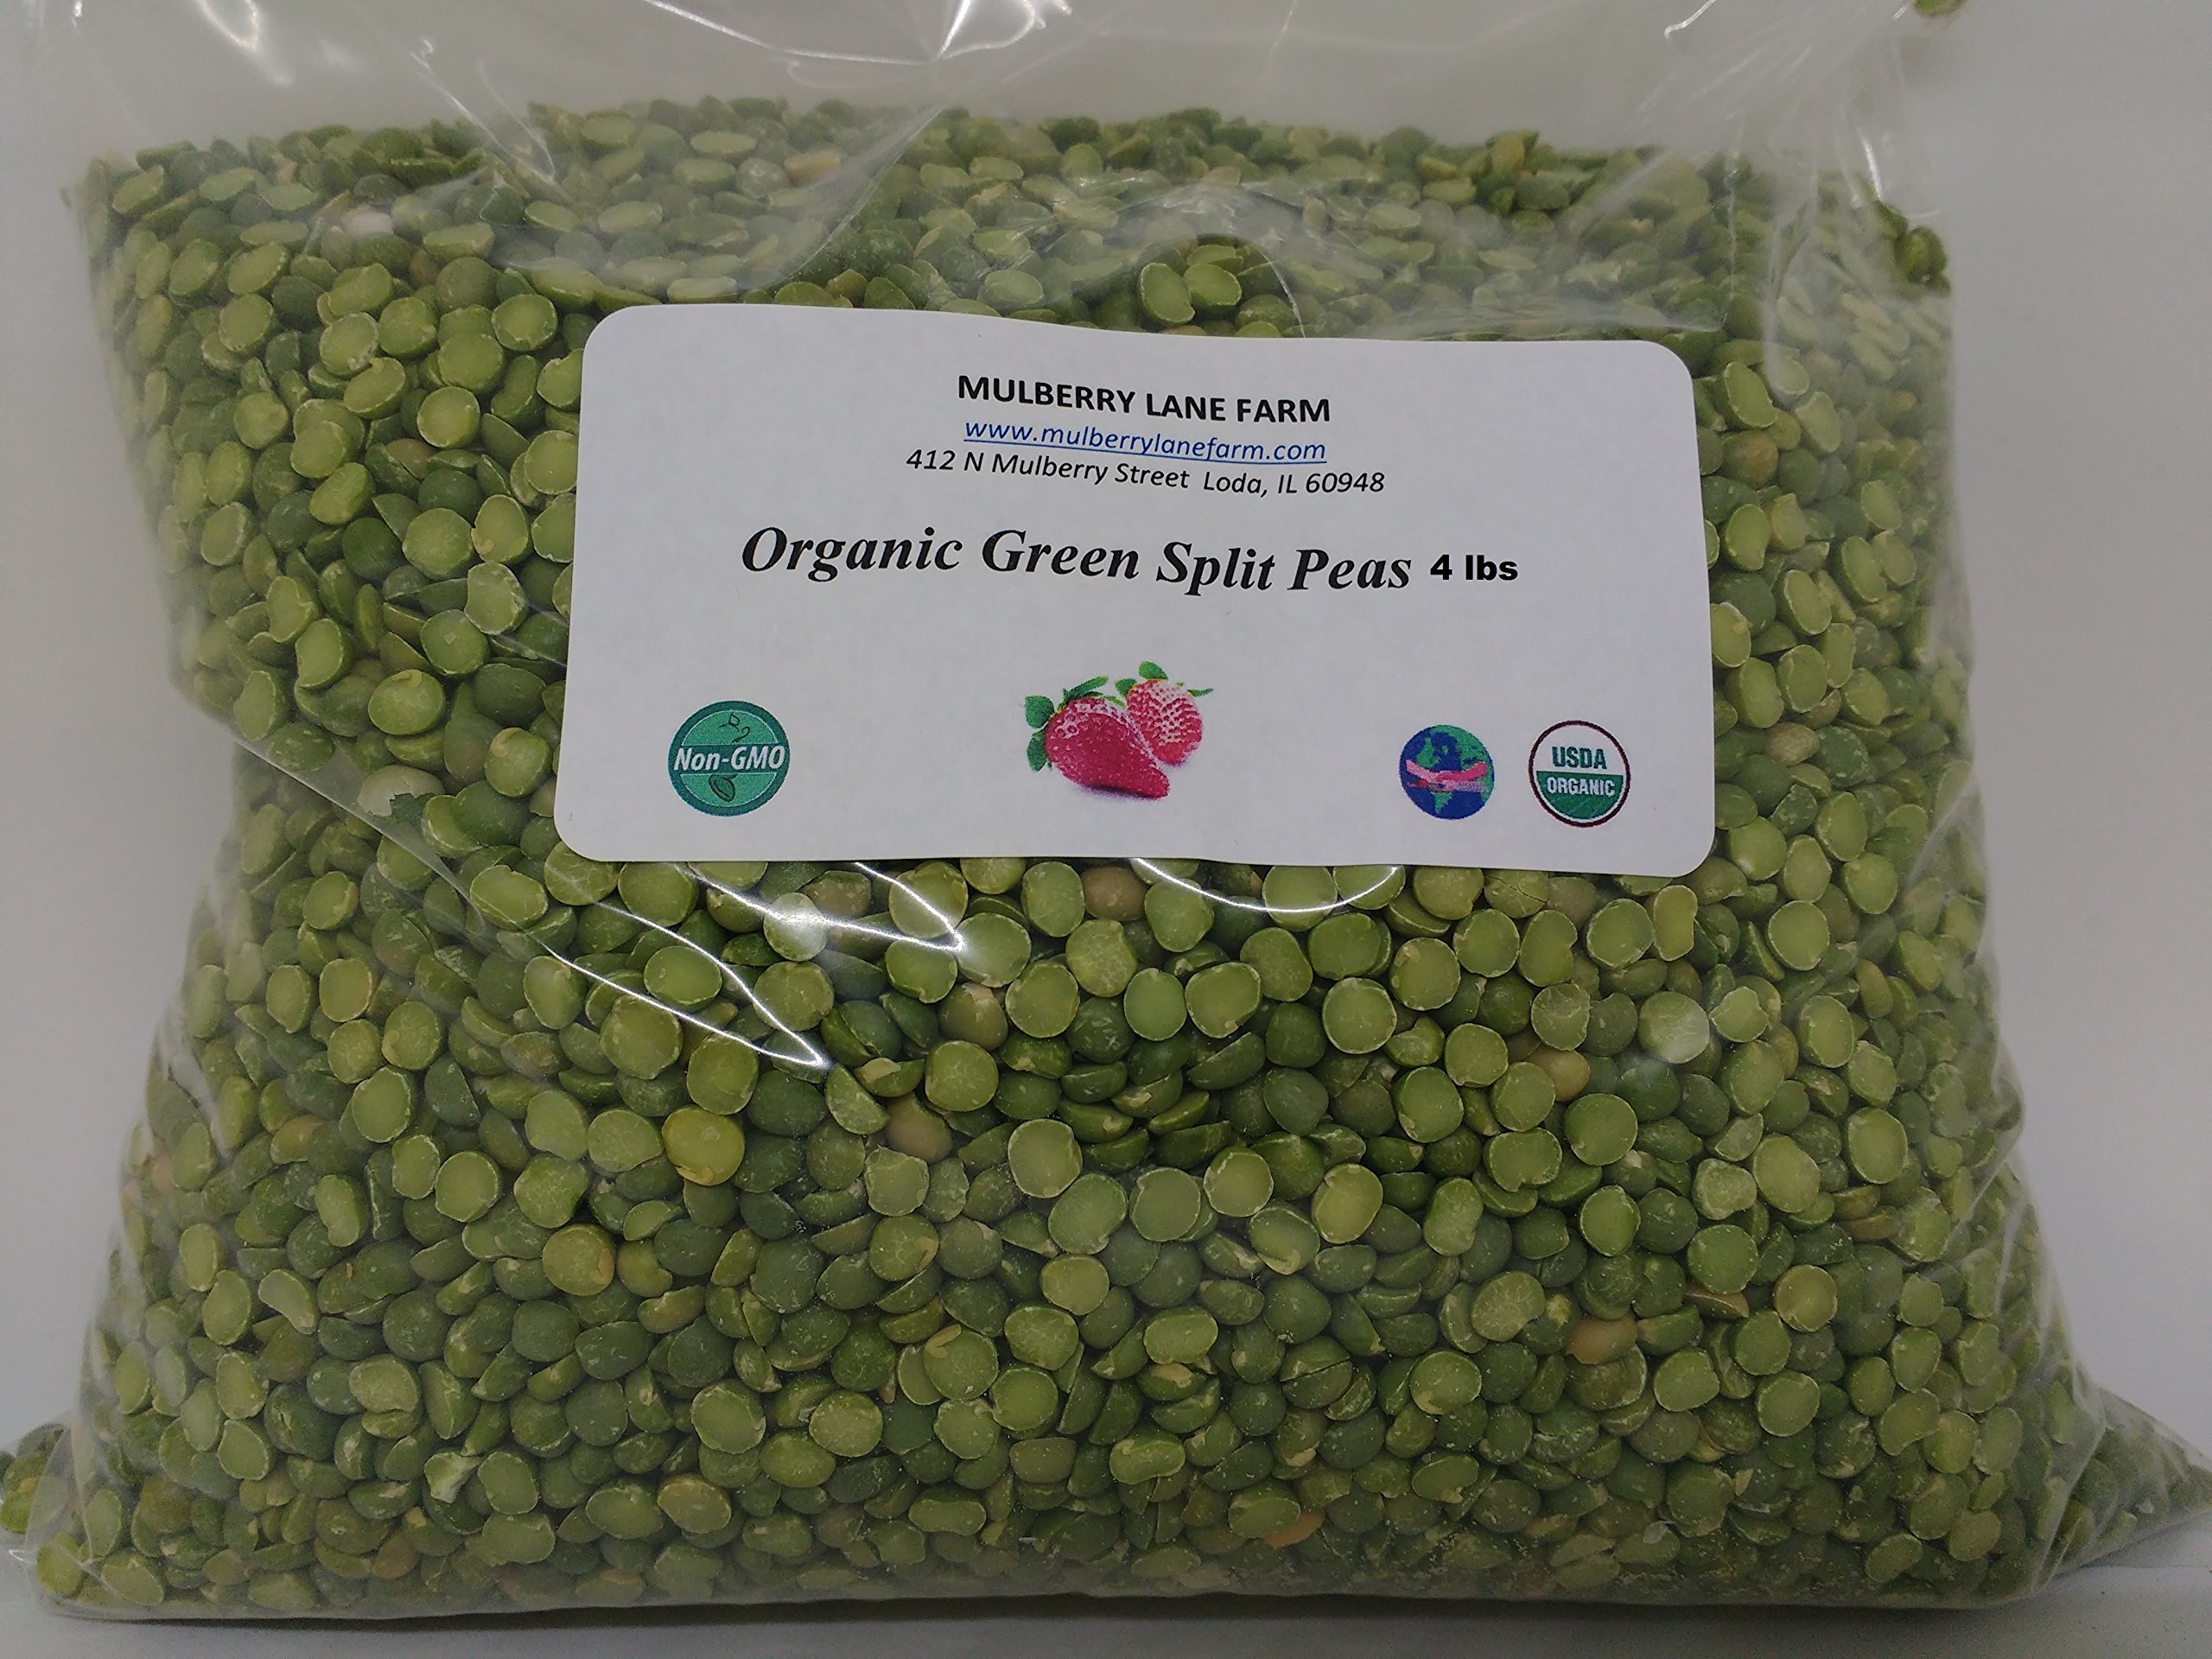 Green Split Peas Green 4 Pounds (Four lbs) USDA Certified Organic Non-GMO BULK